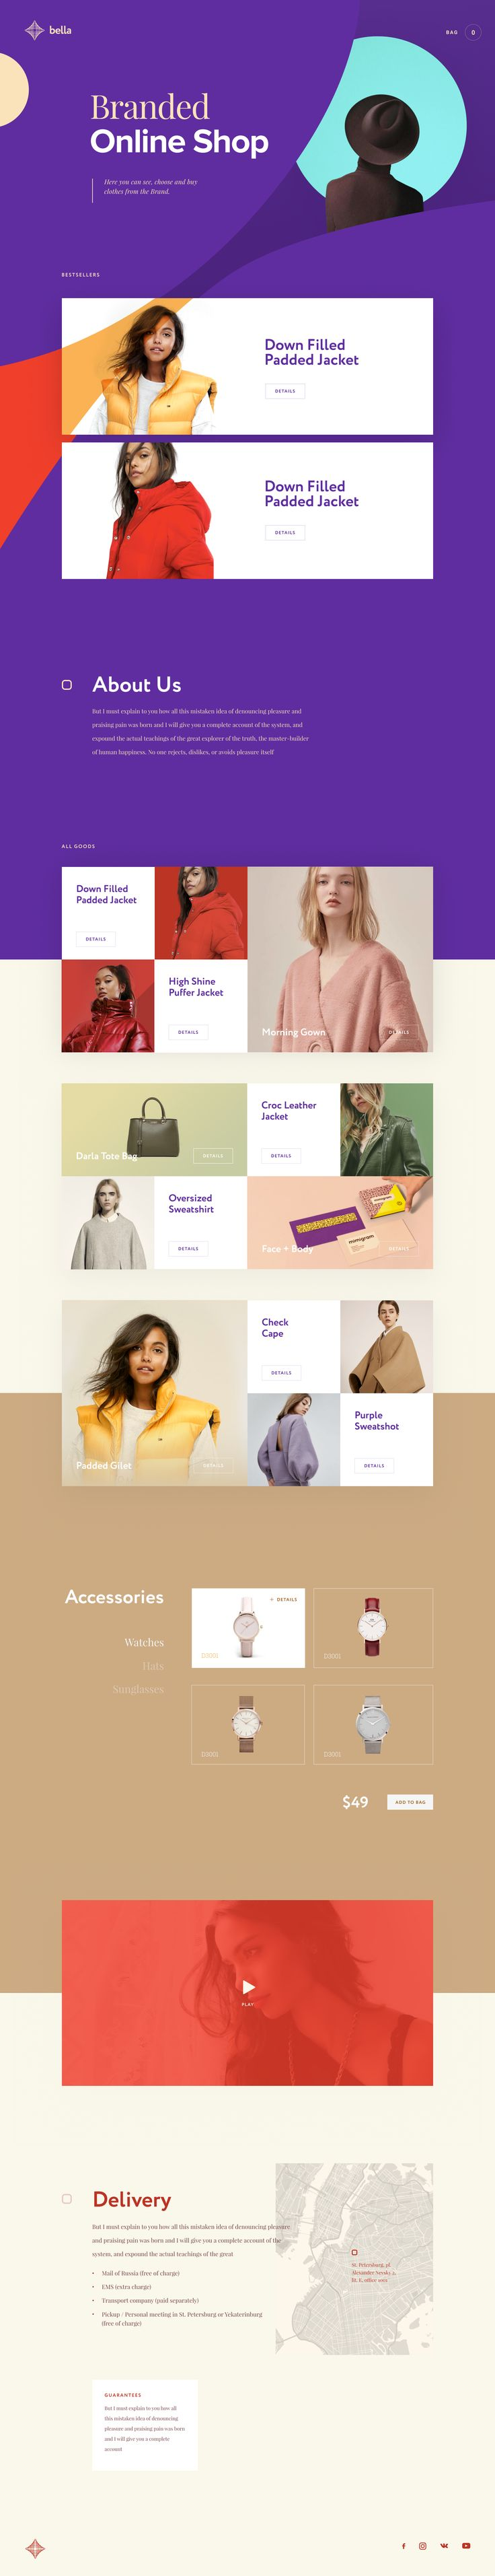 BELLA - Branded Online Shop. Ui concept design and visual identity by Cuberto.